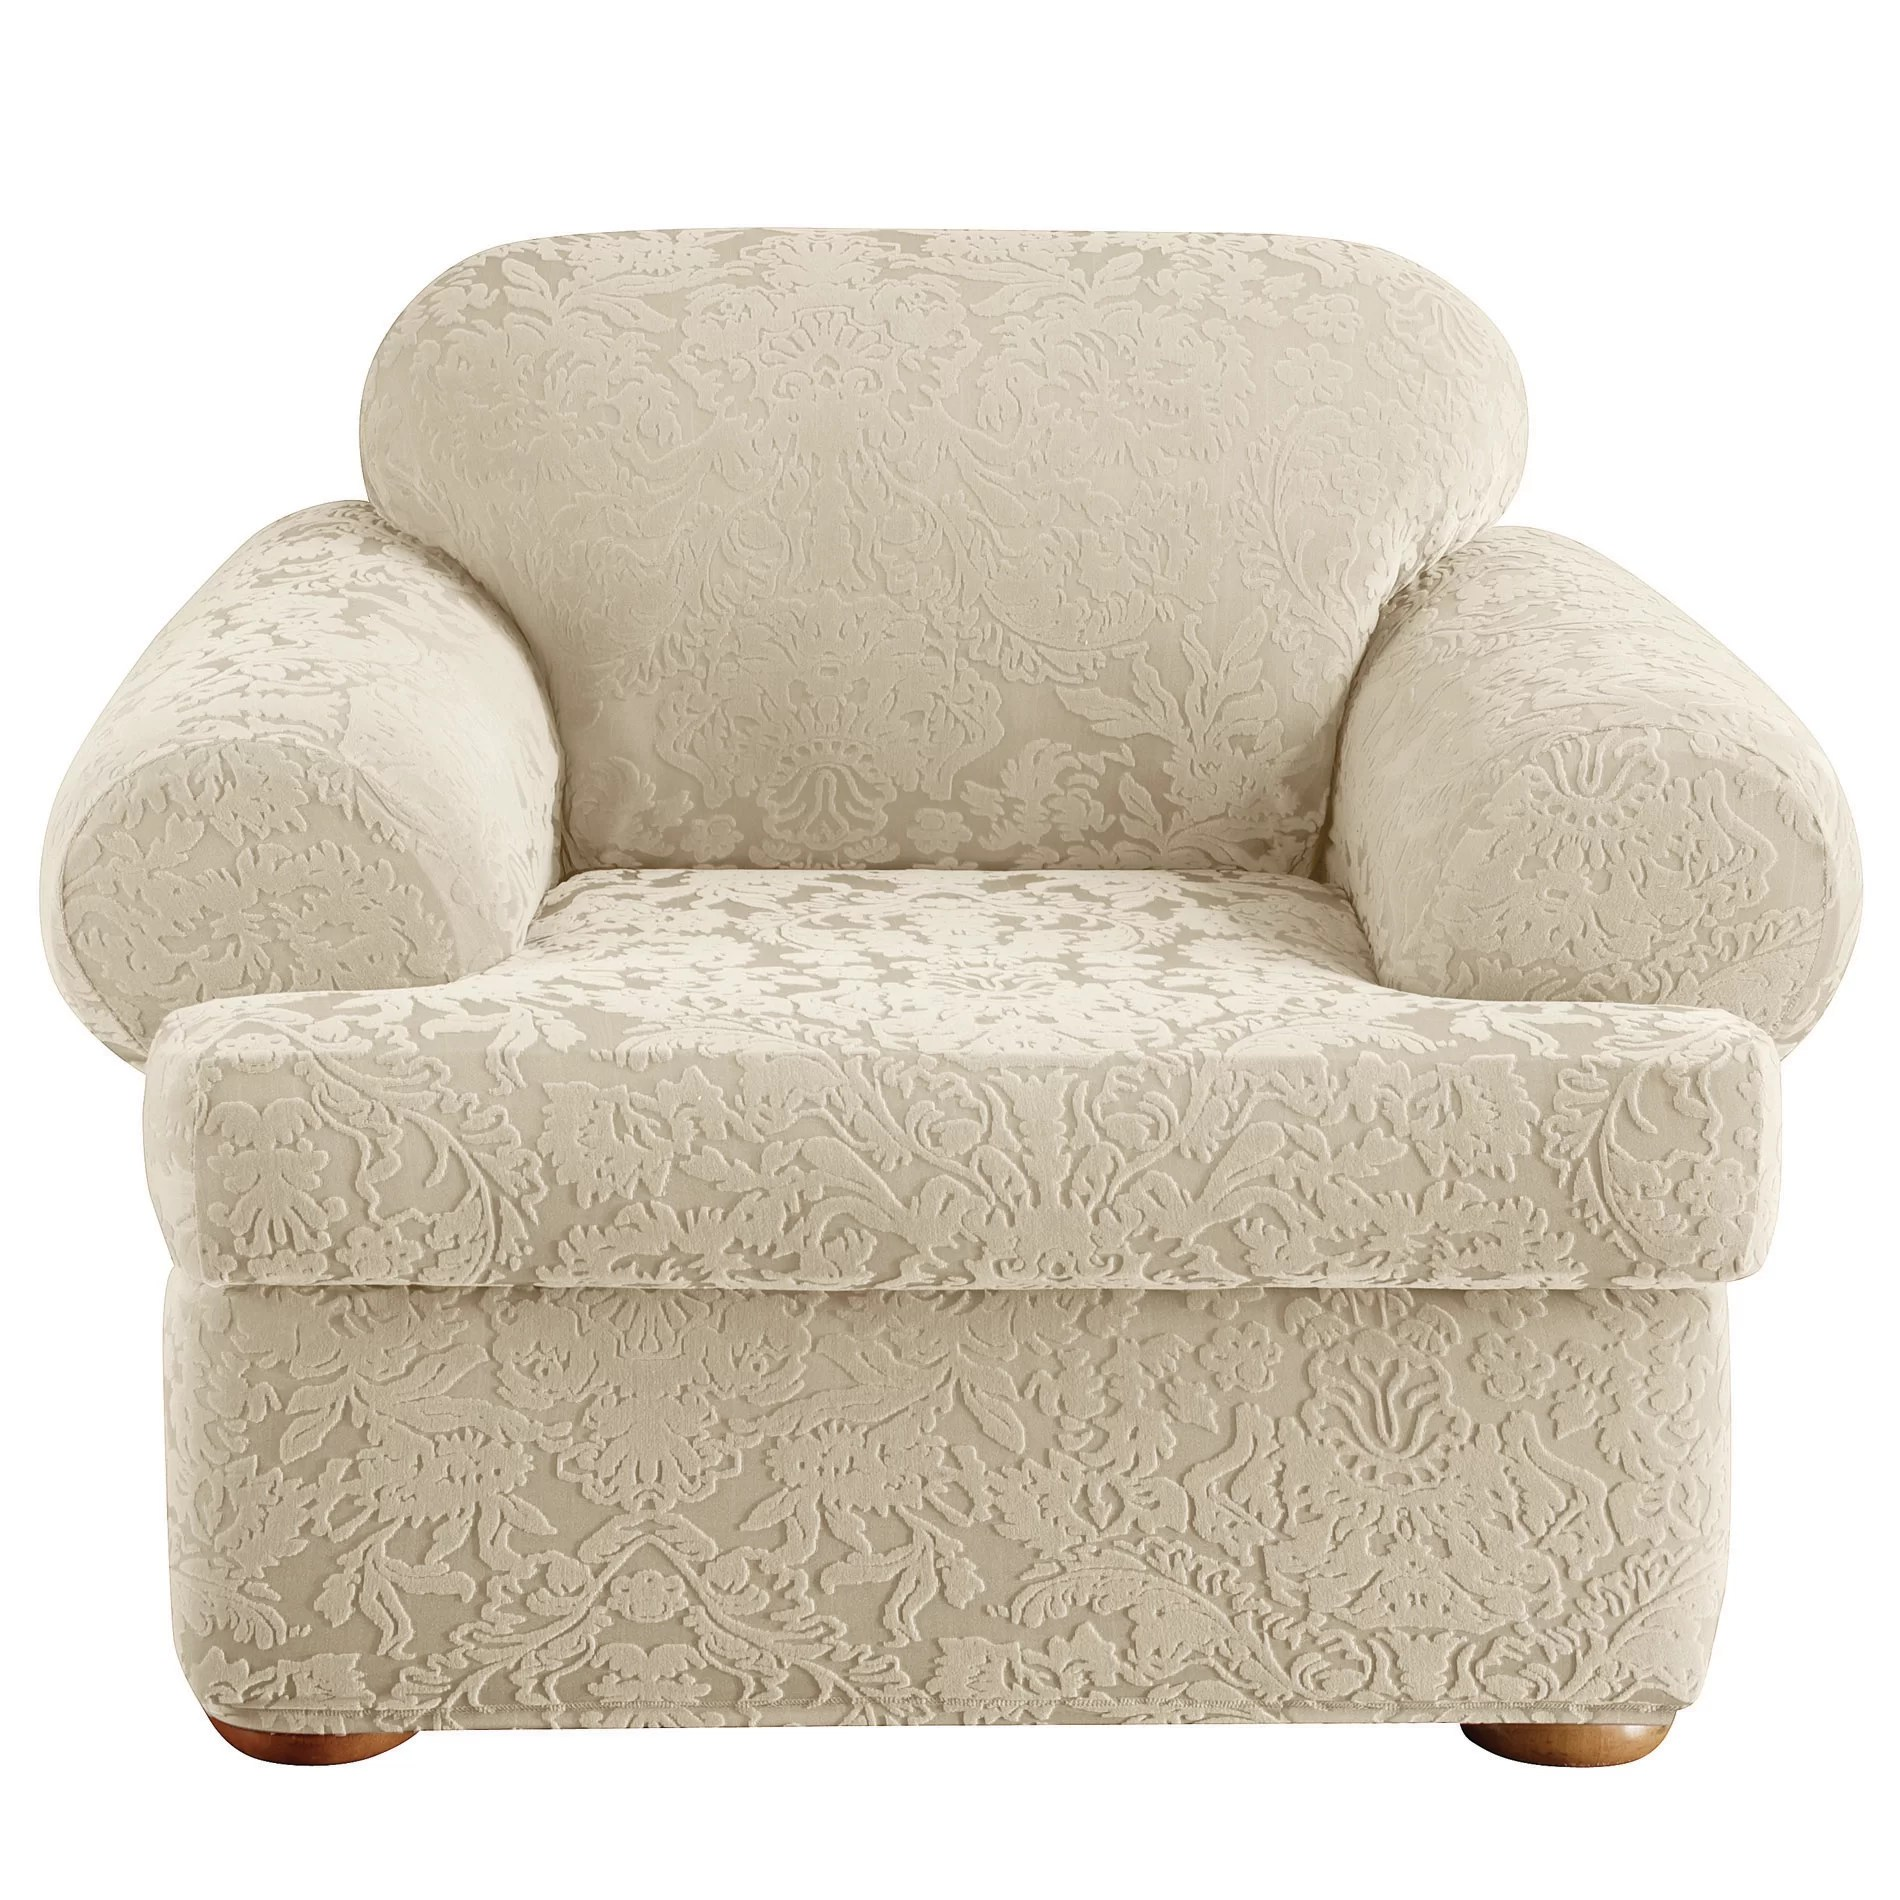 Chair Slipcovers T Cushion Sure Fit Stretch Jacquard Damask Armchair T Cushion